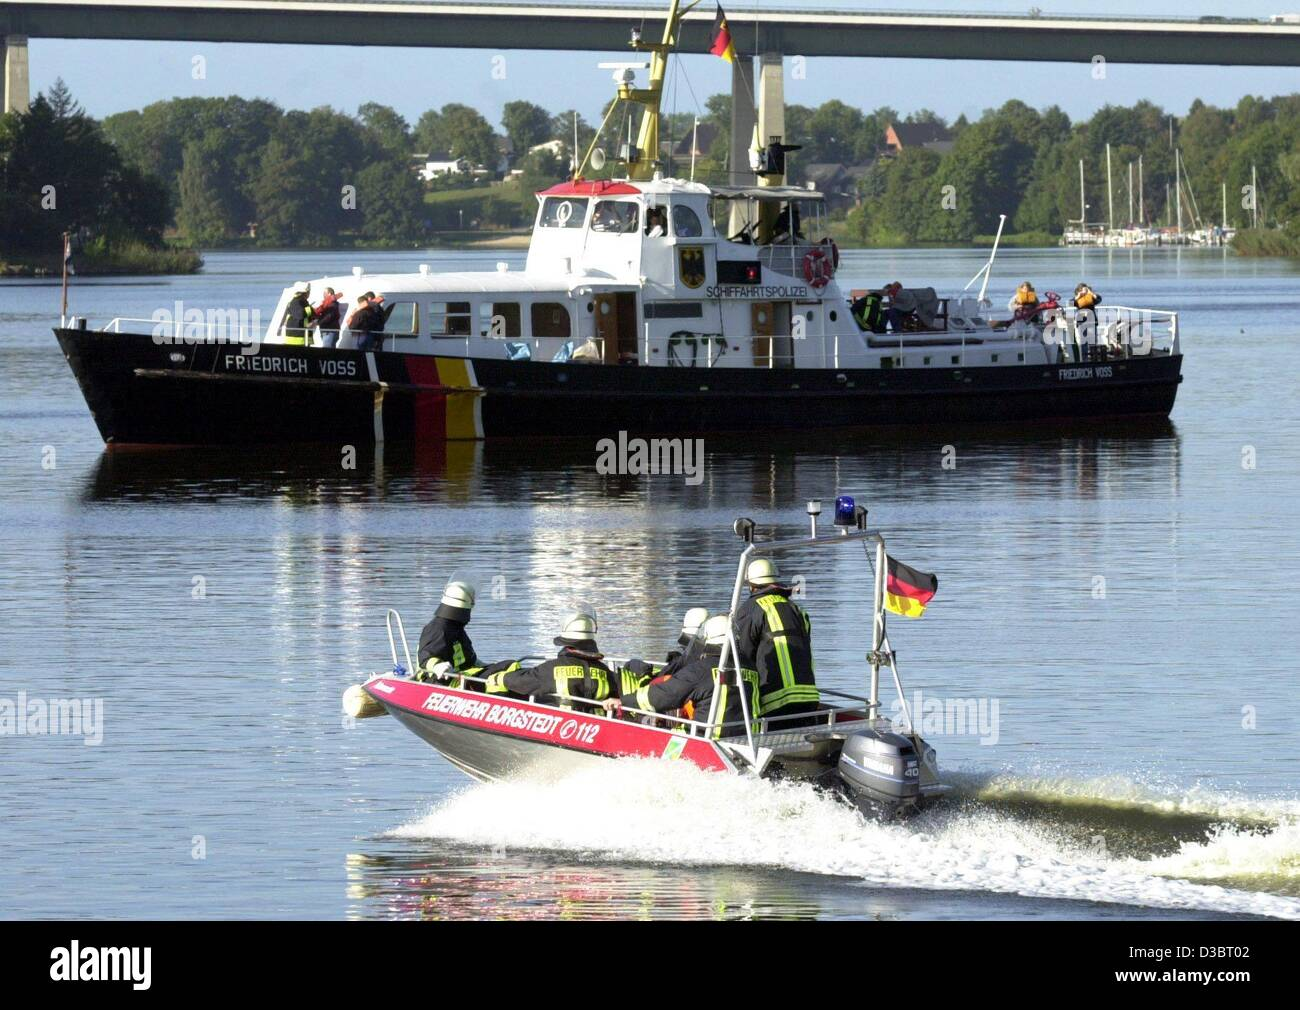 (dpa) - A firebrigade boat speeds towards a ship in distress during an emergency exercise on the canal connecting - Stock Image